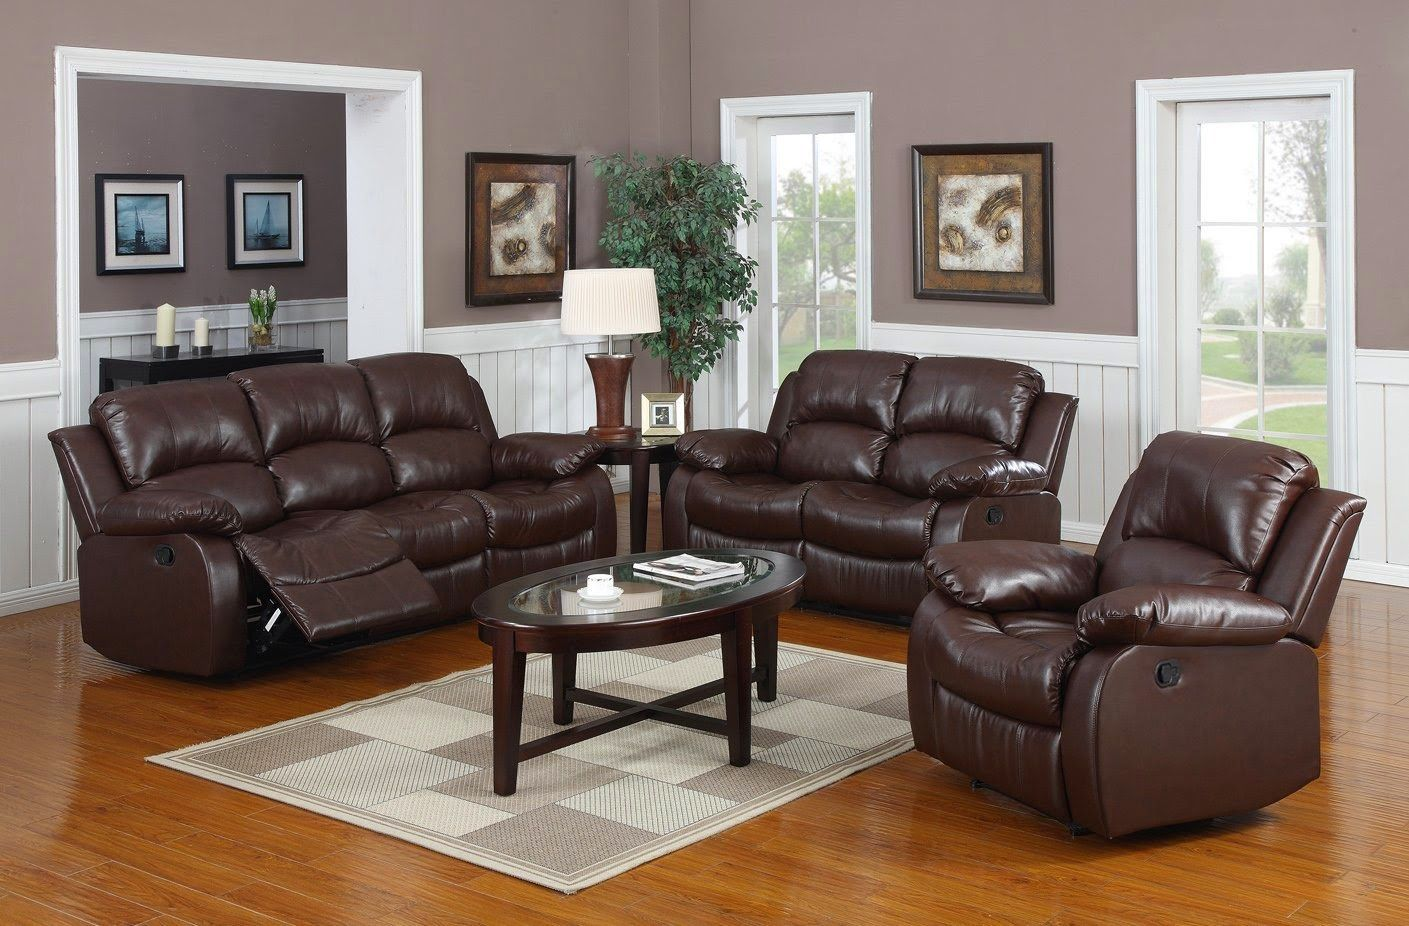 Cool Pure Leather Sofa Fancy 21 In Living Room Ideas With